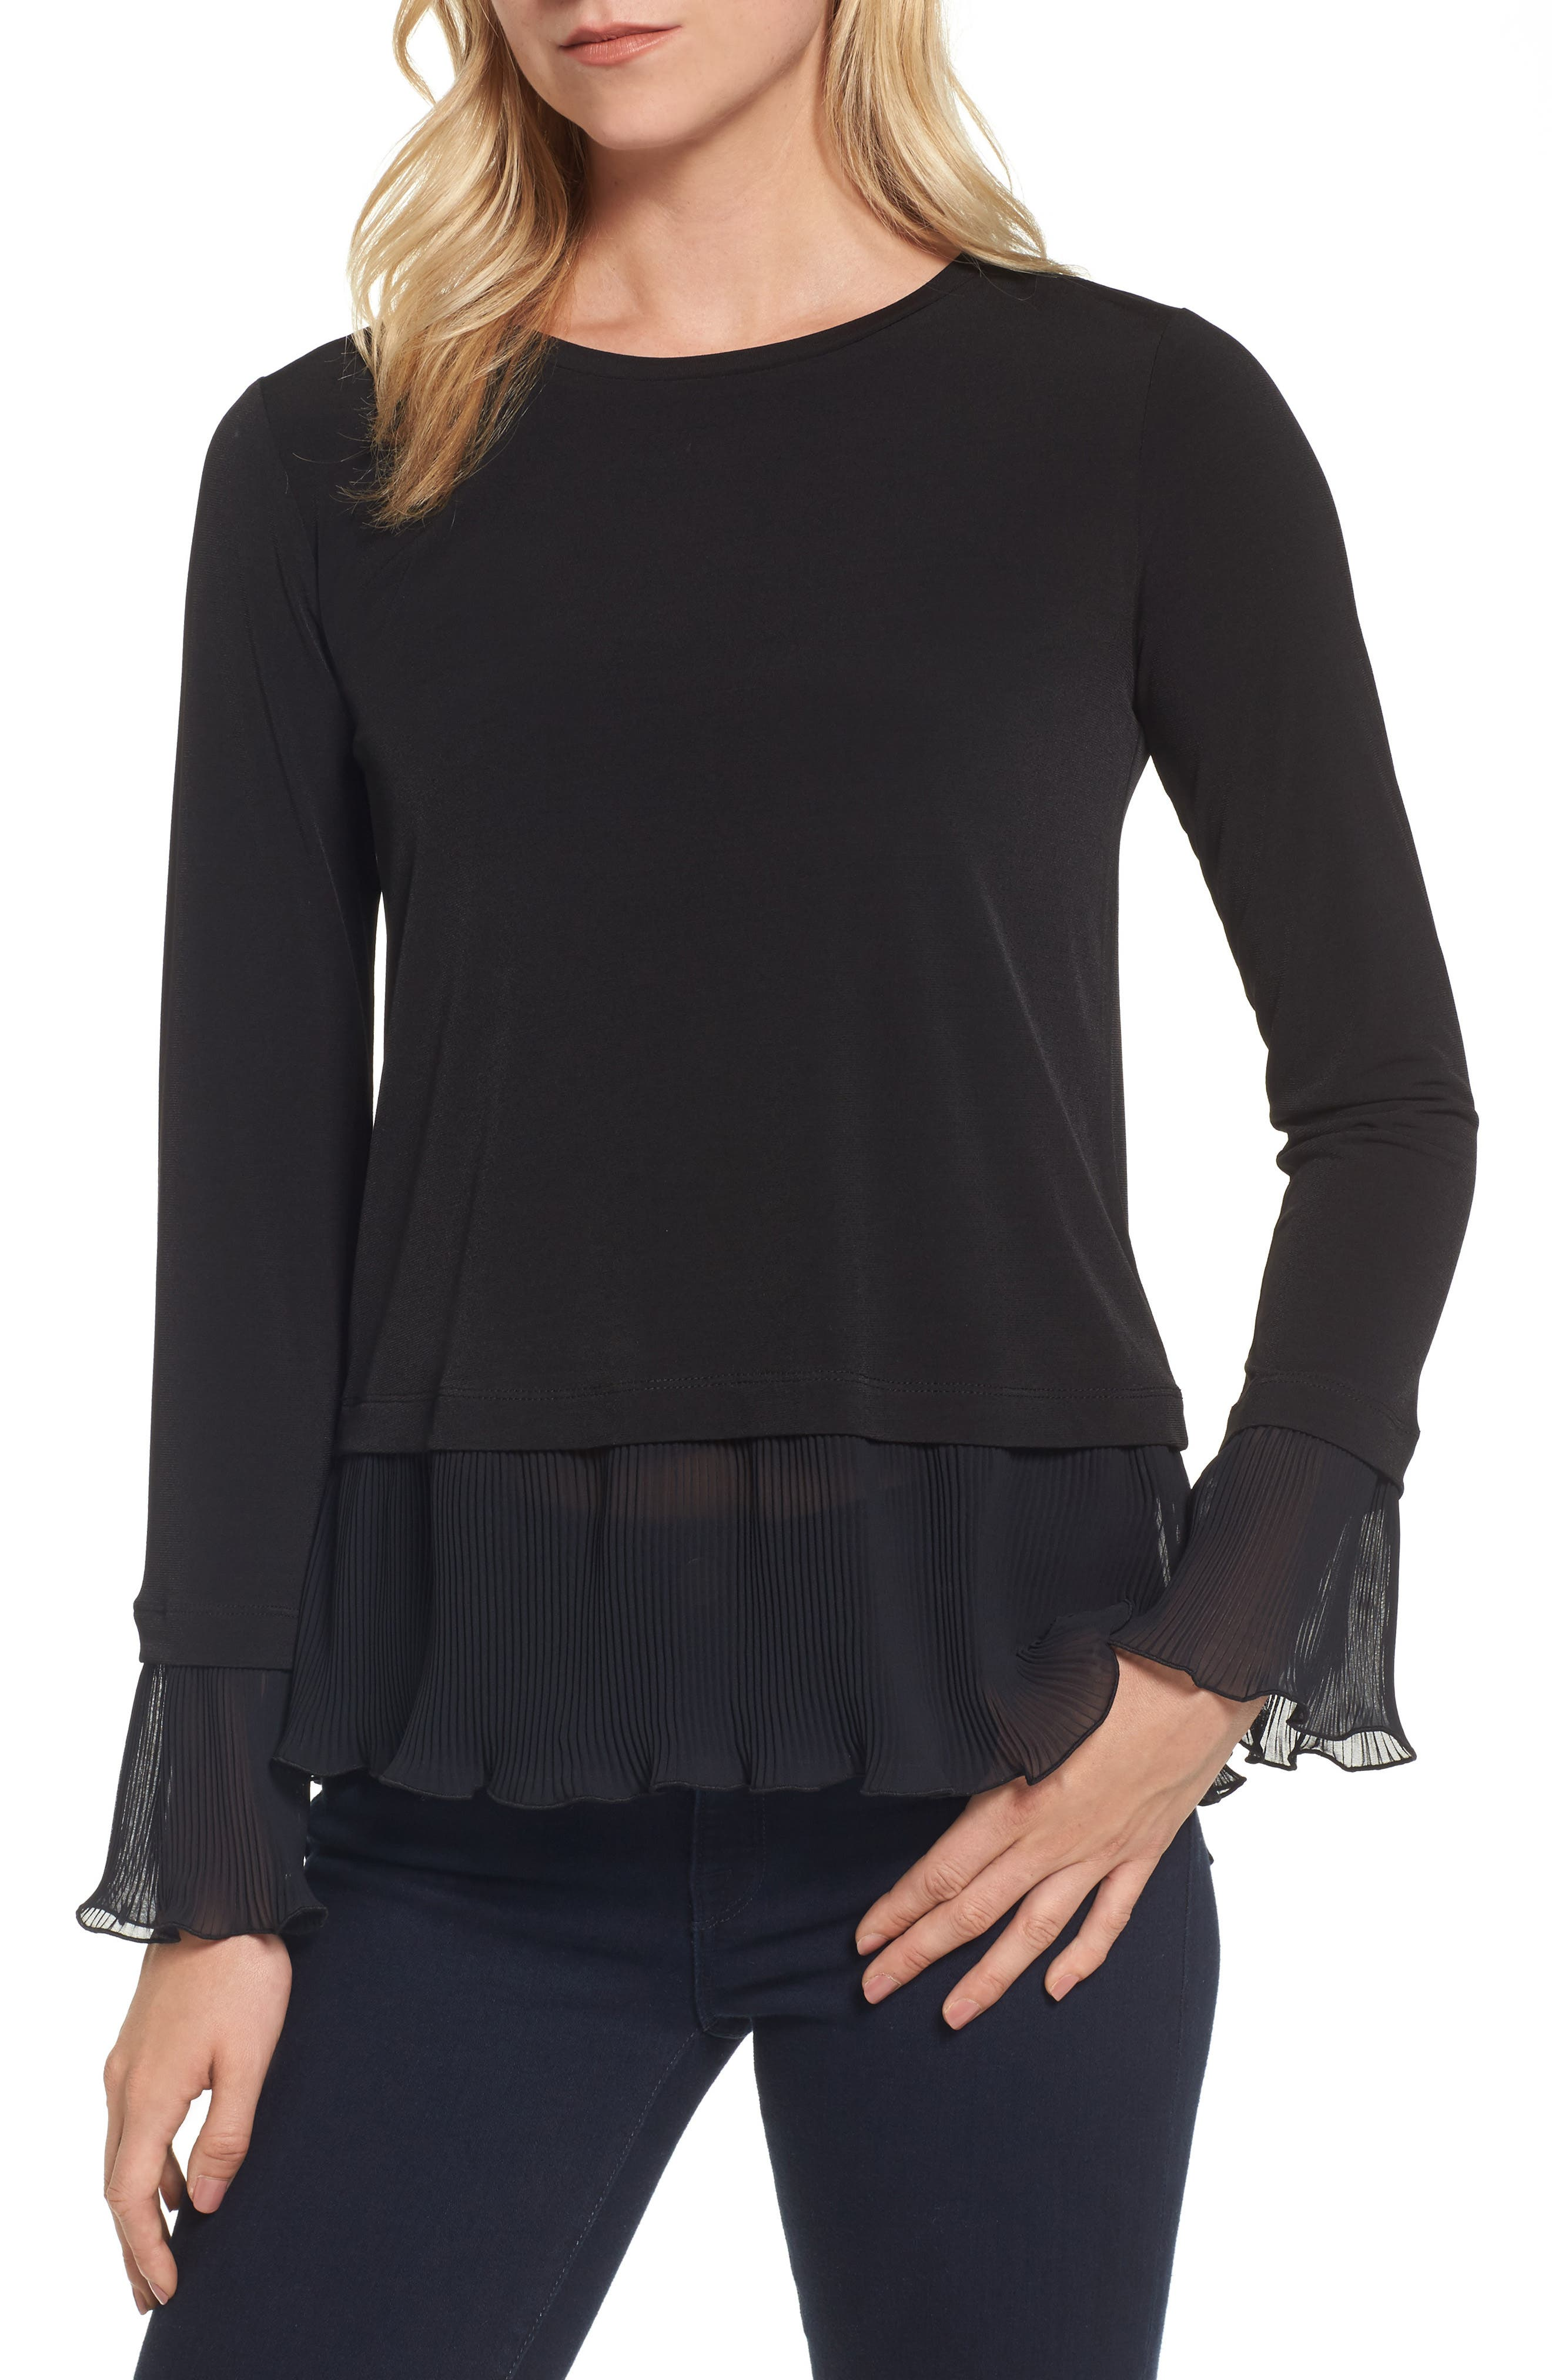 Alternate Image 1 Selected - MICHAEL Michael Kors Ruffle Hem Top